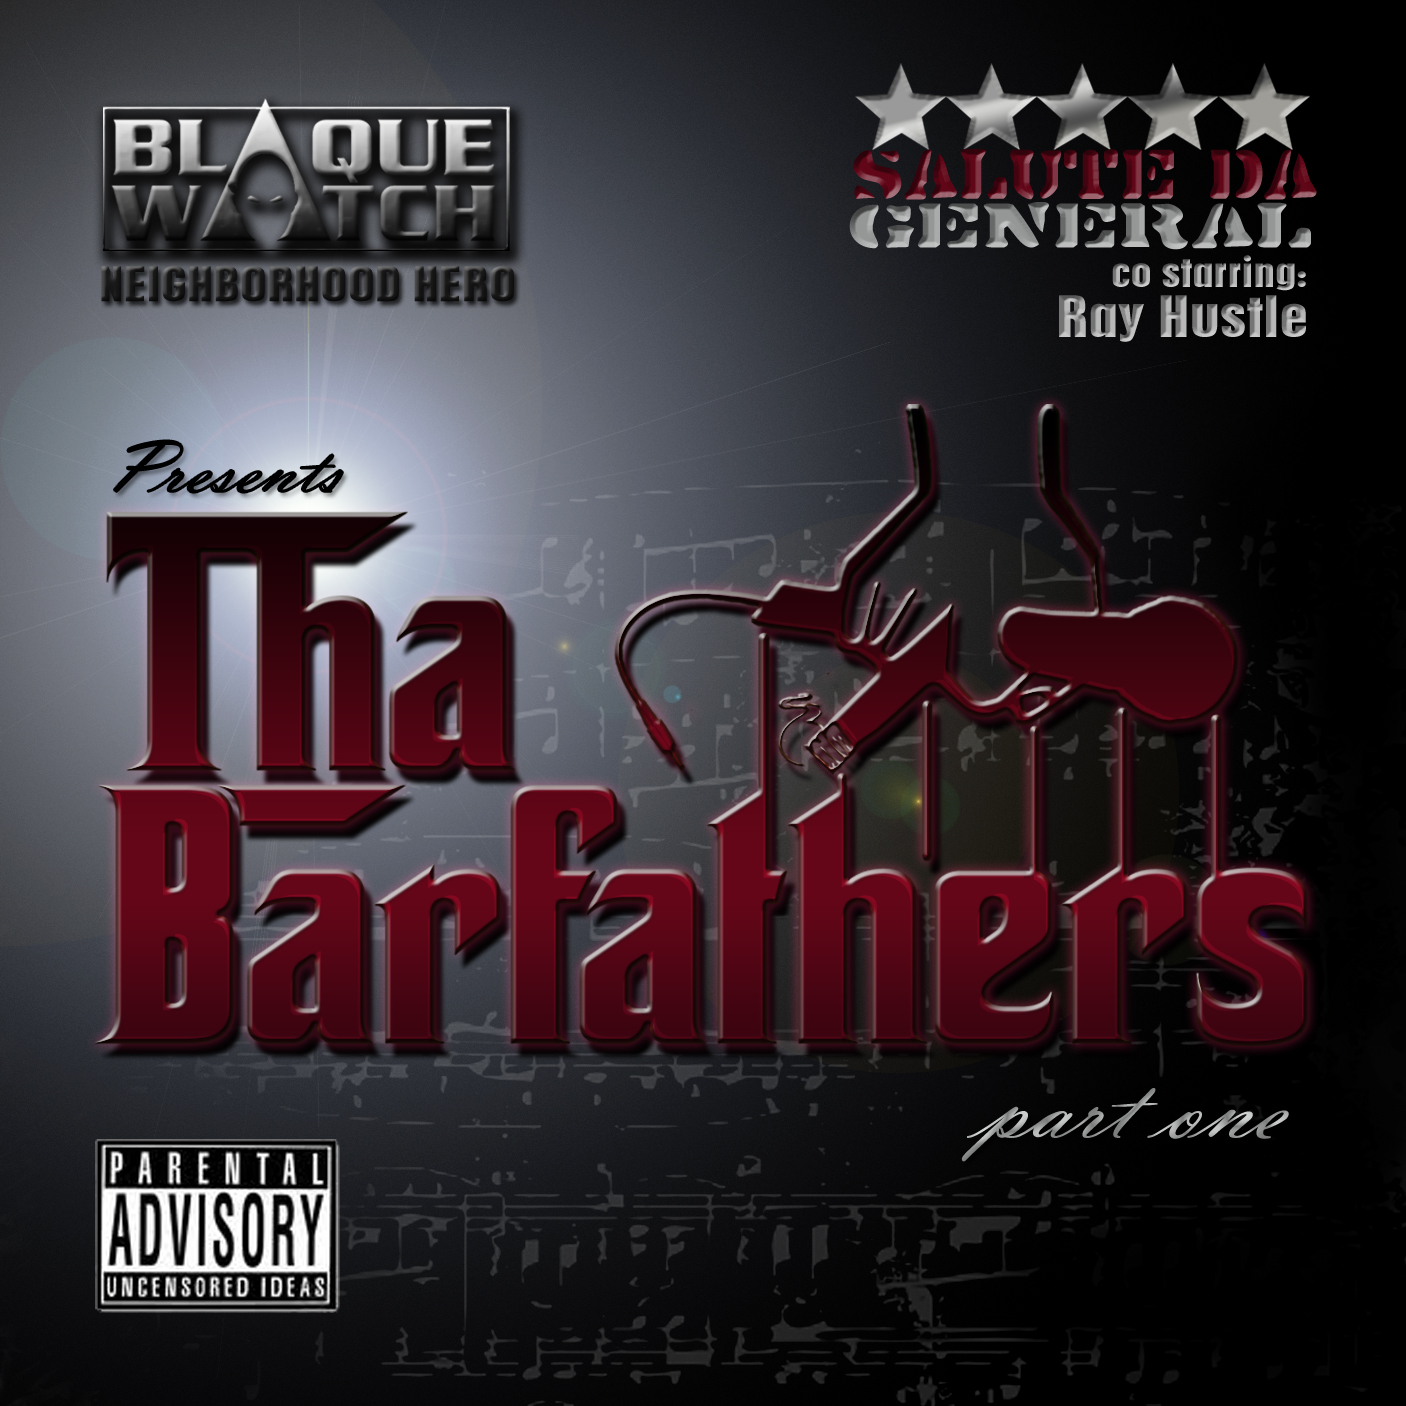 barfathers_cover-copy-jpg